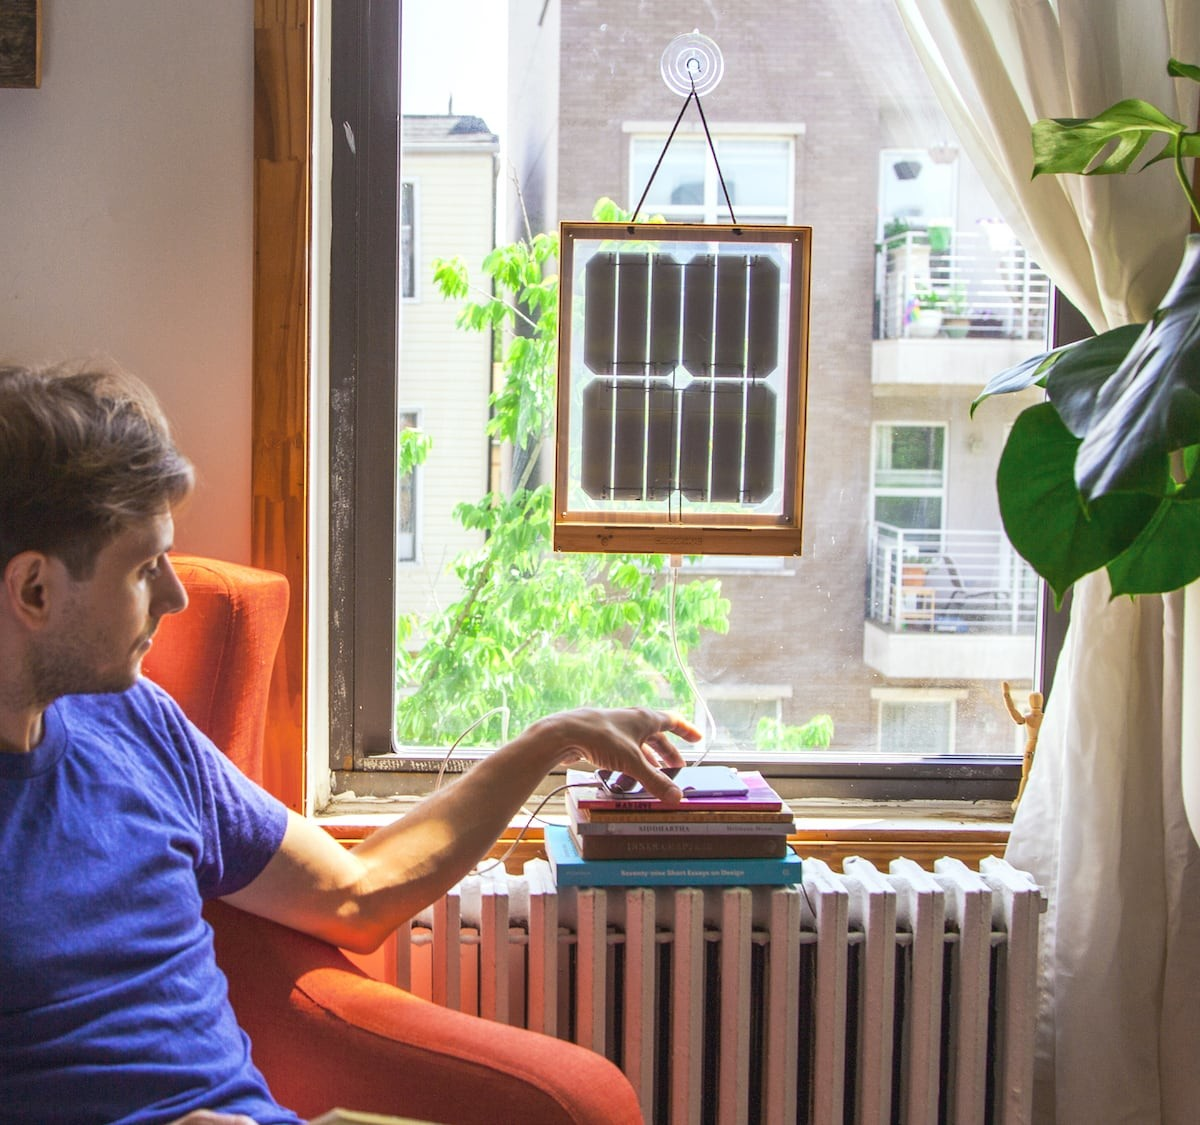 Grouphug Designer Window Solar Charger allows renters to harness the power of the sun